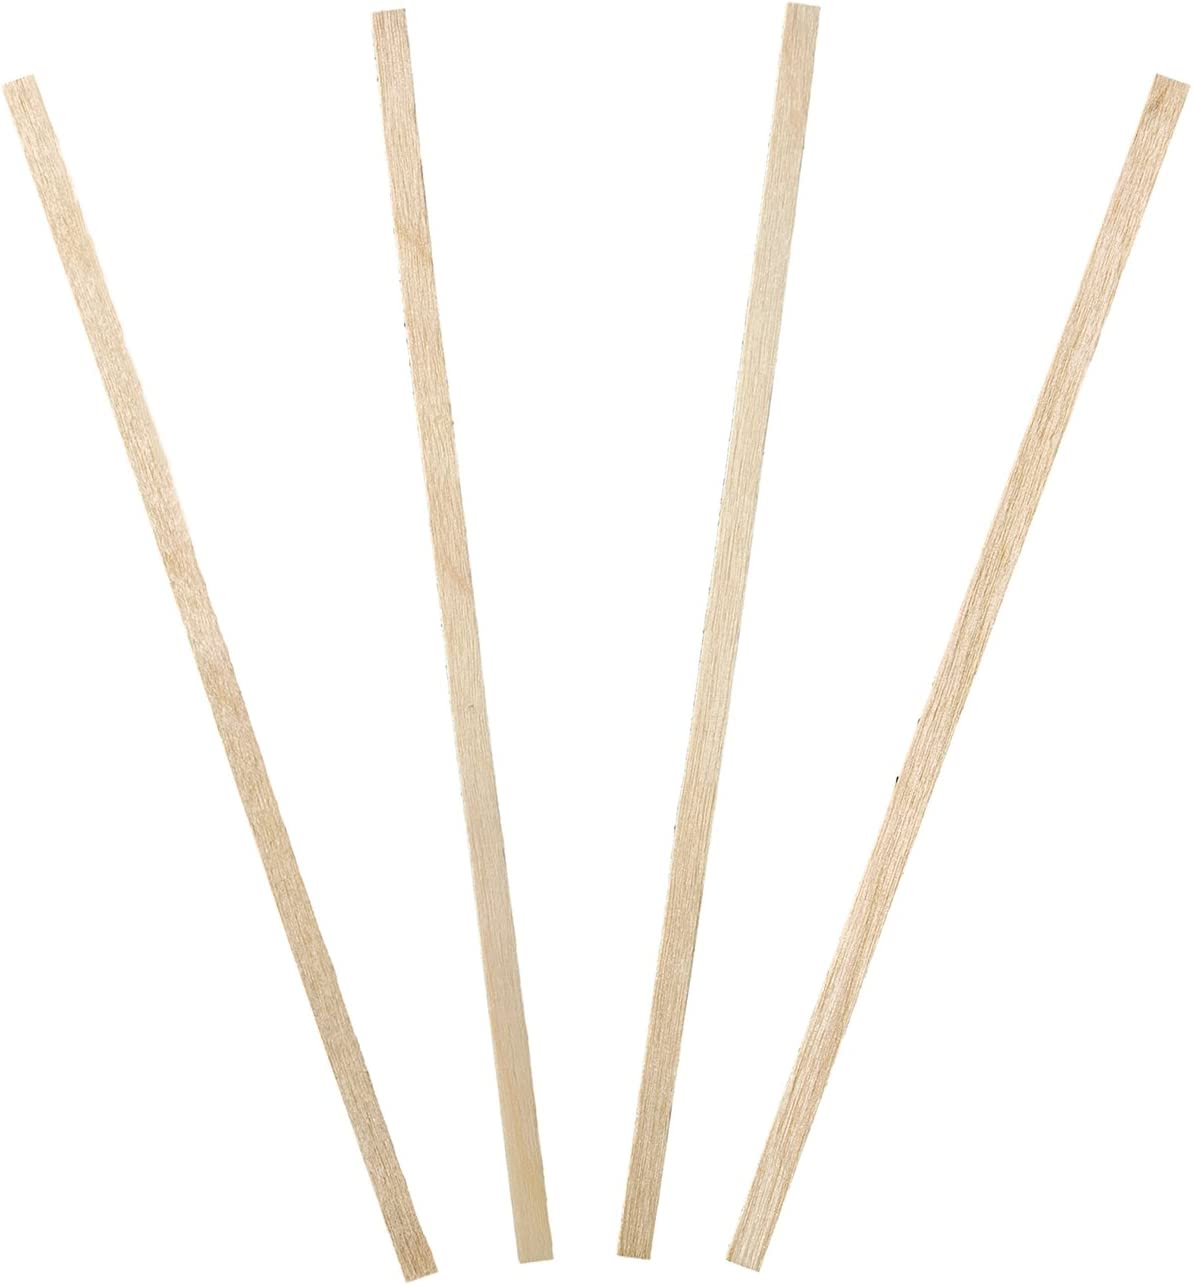 CiboWares 5.5 Inch Wood Coffee Beverage Stirrers, Package of 1000